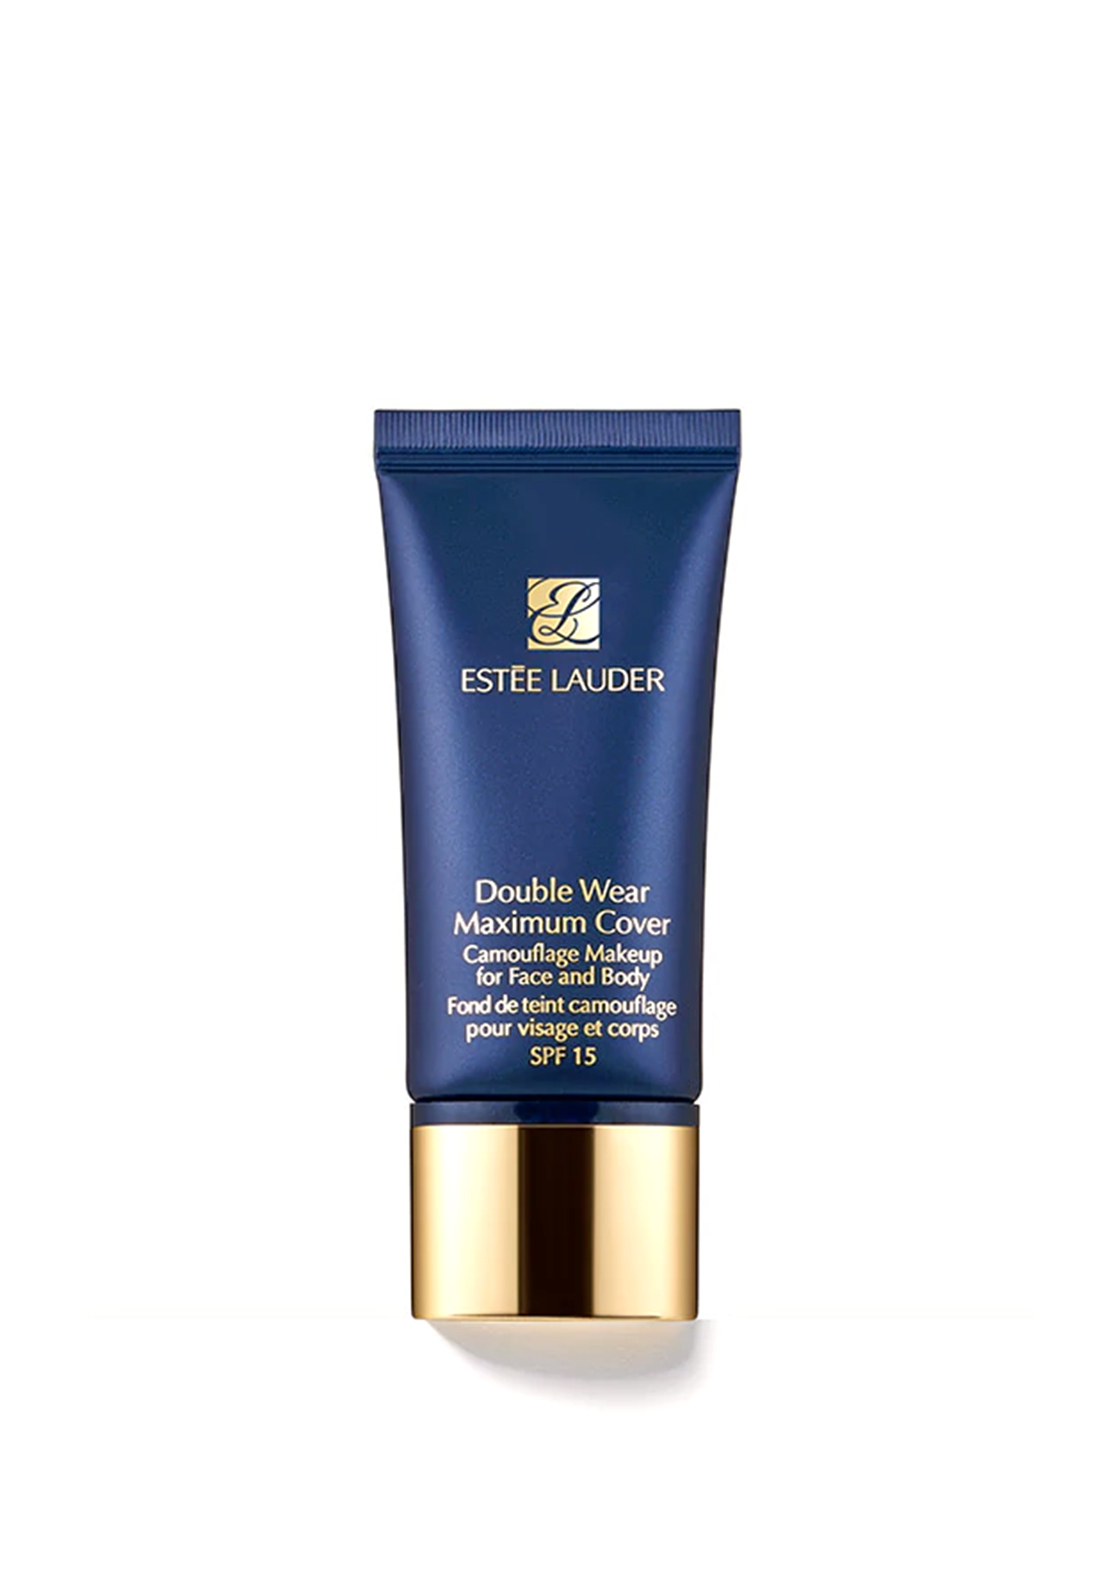 Estee Lauder Double Wear Maxium Cover Foundation, Creamy Tan